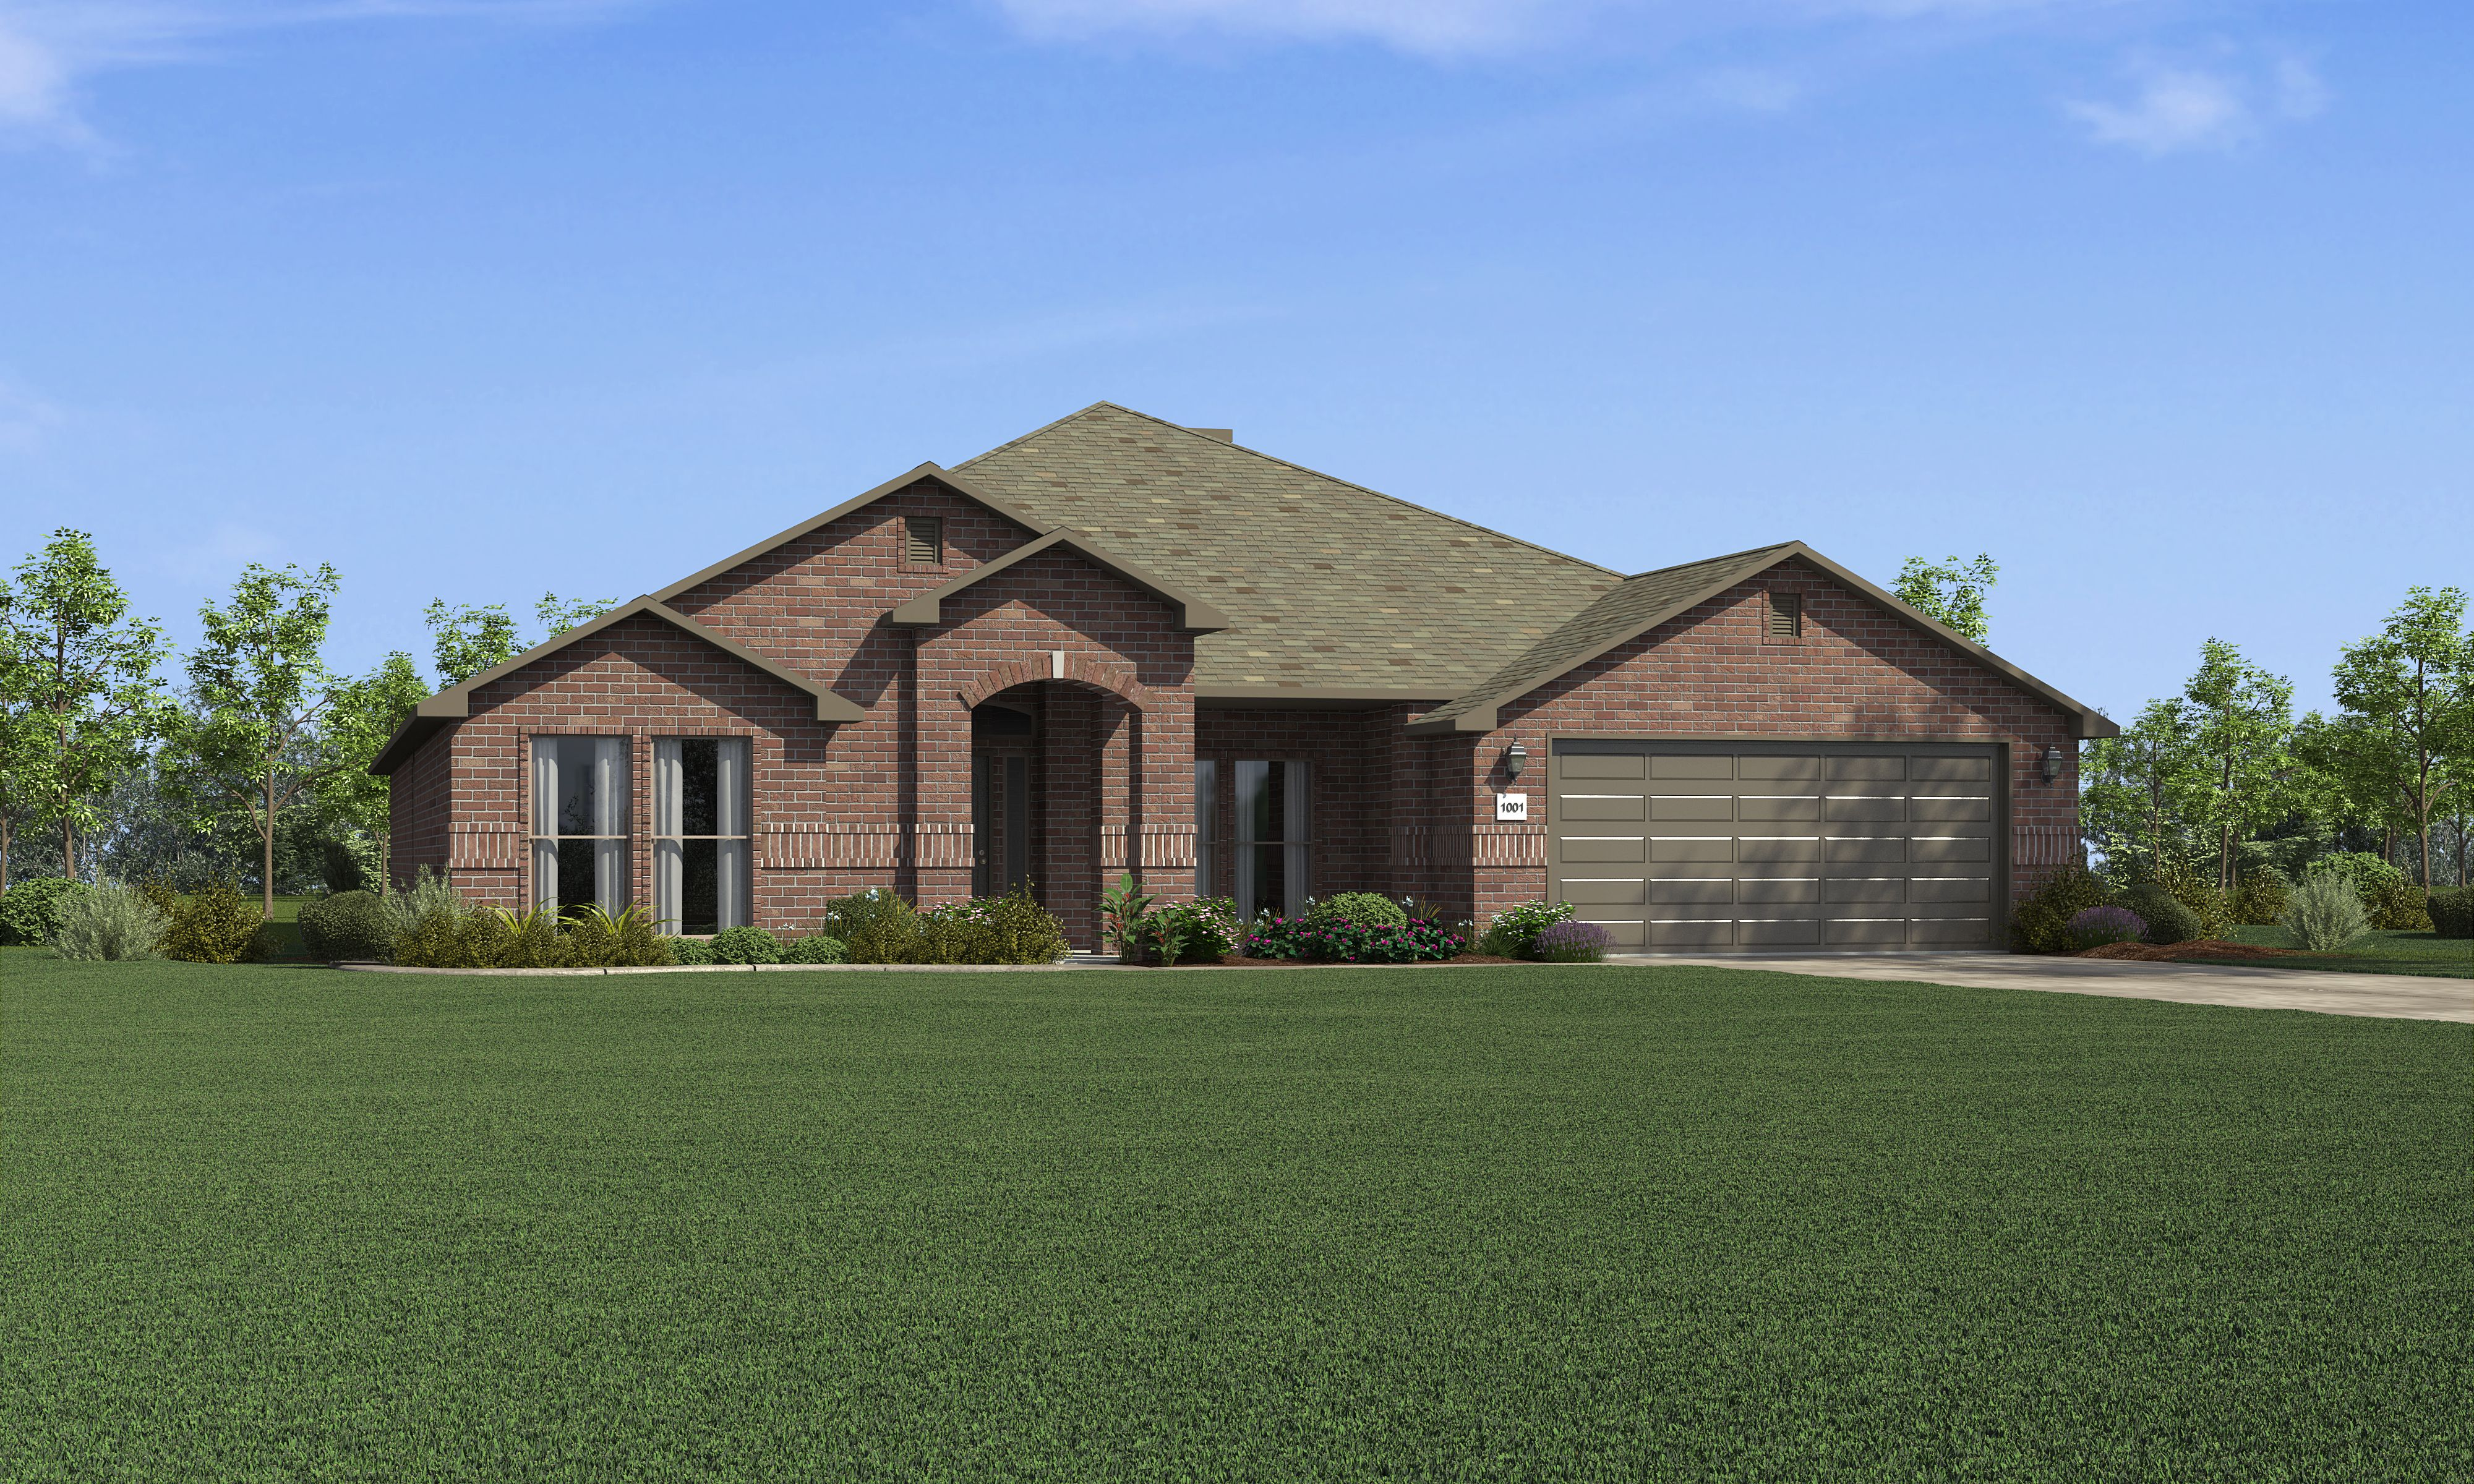 Single Family for Sale at Bella Mia Estates - Rosie 12502 Hudson Ave Lubbock, Texas 79423 United States